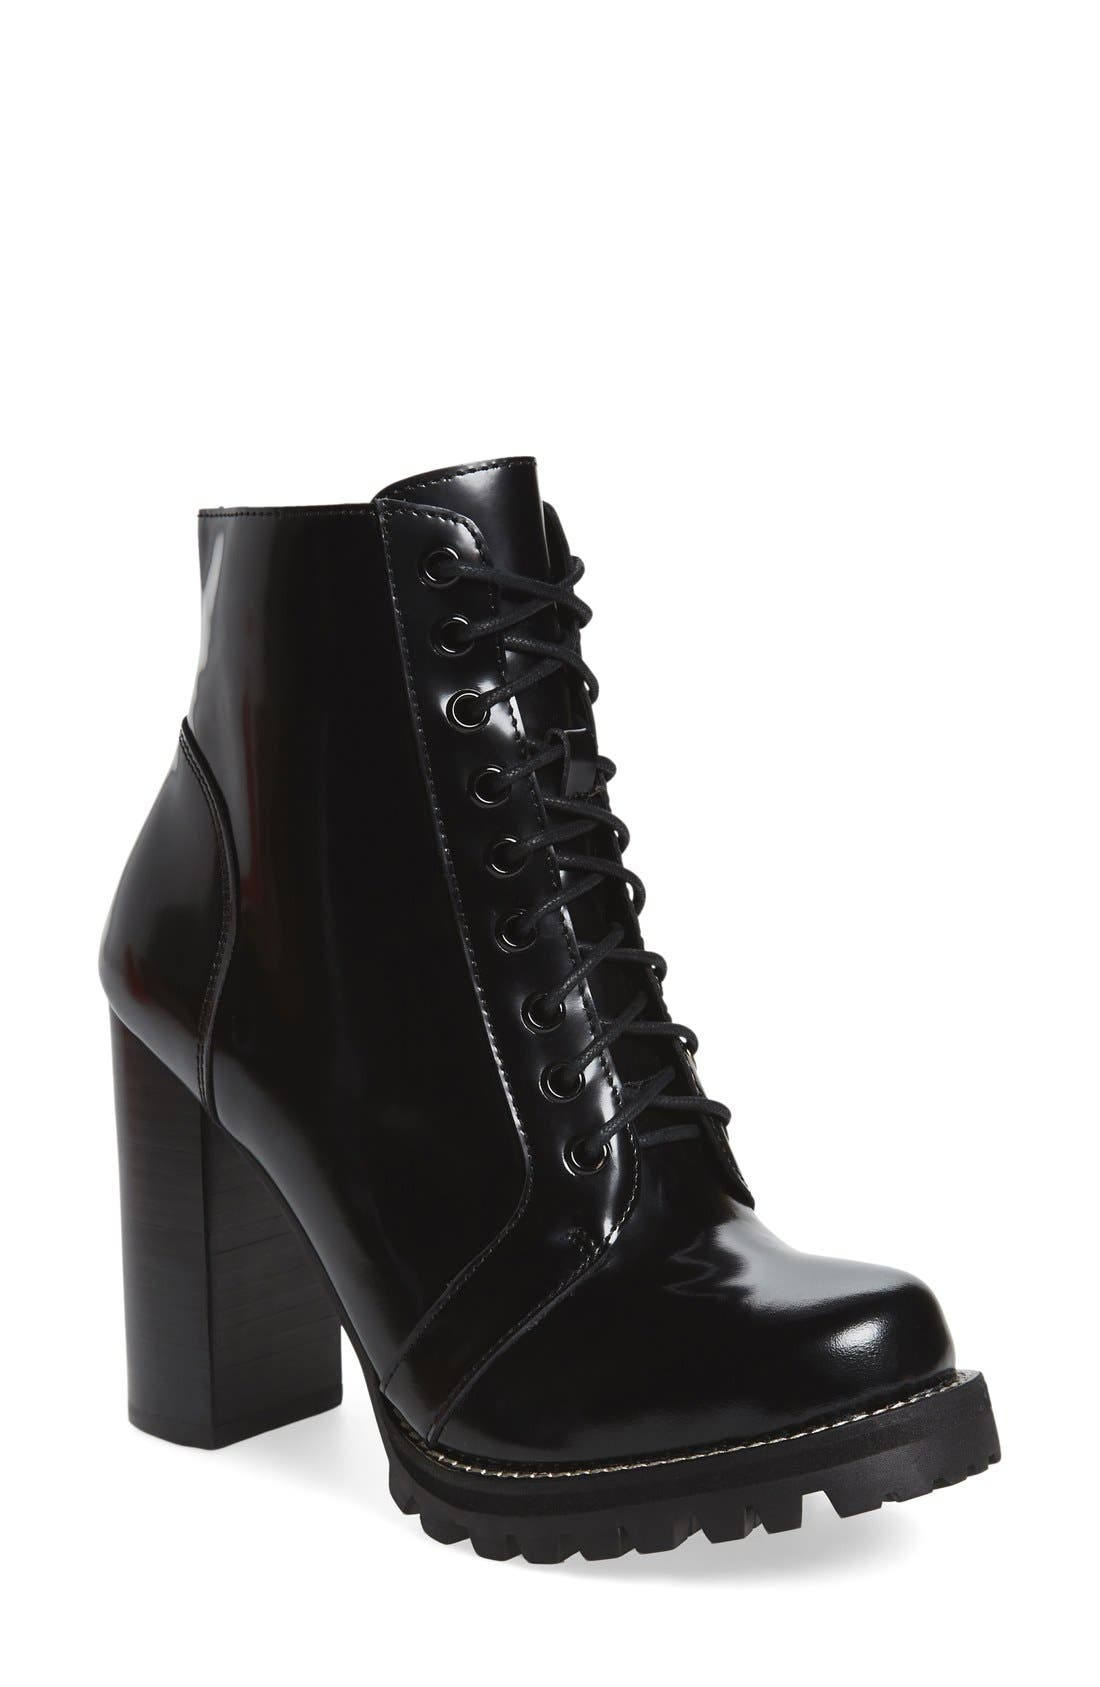 Alternate Image 1 Selected - Jeffrey Campbell 'Legion' High Heel Boot (Women)